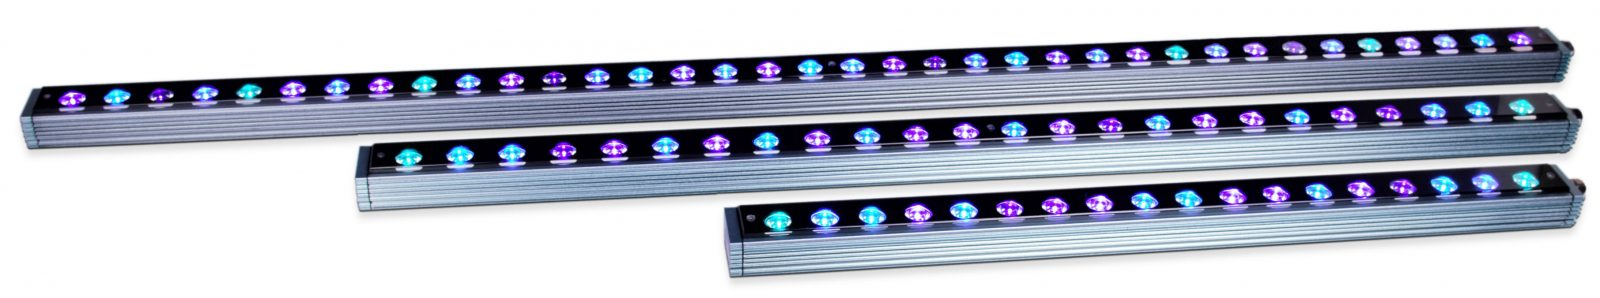 Reef Aquarium Blue plus OR2 LED bar